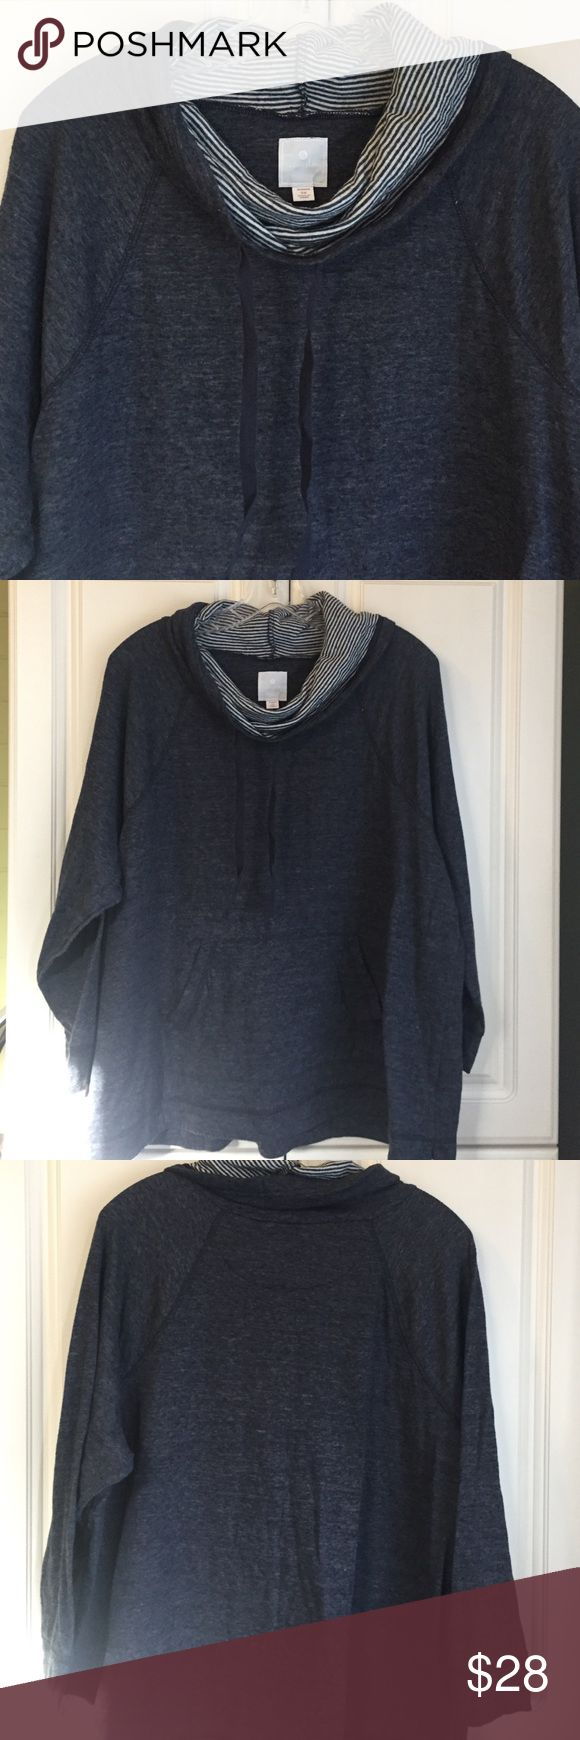 Cowl Neck Sweatshirt Super soft and worm without being bulky. Indigo blue in color with blue and white striped contrast. Handwarmer pockets. Made of poly/cotton/rayon. Sunday Tops Sweatshirts & Hoodies